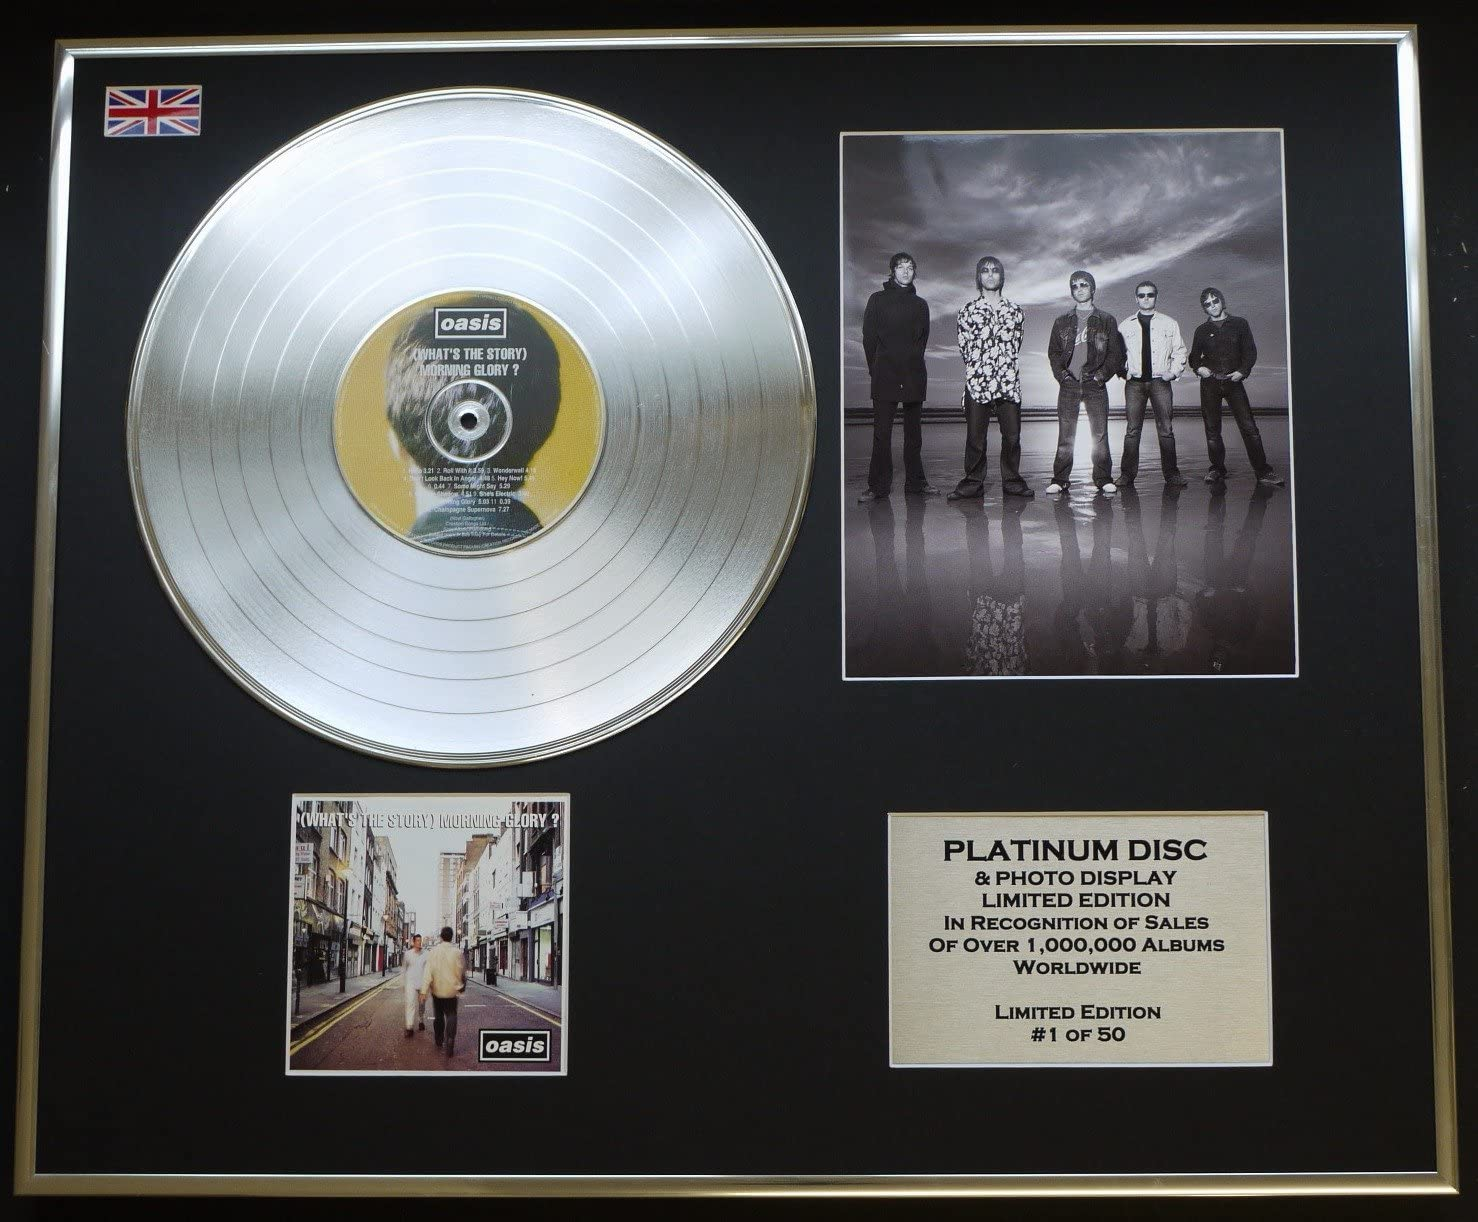 What The Story Morning Glory? Oasis//Ltd Edition CD Platinum Disc//